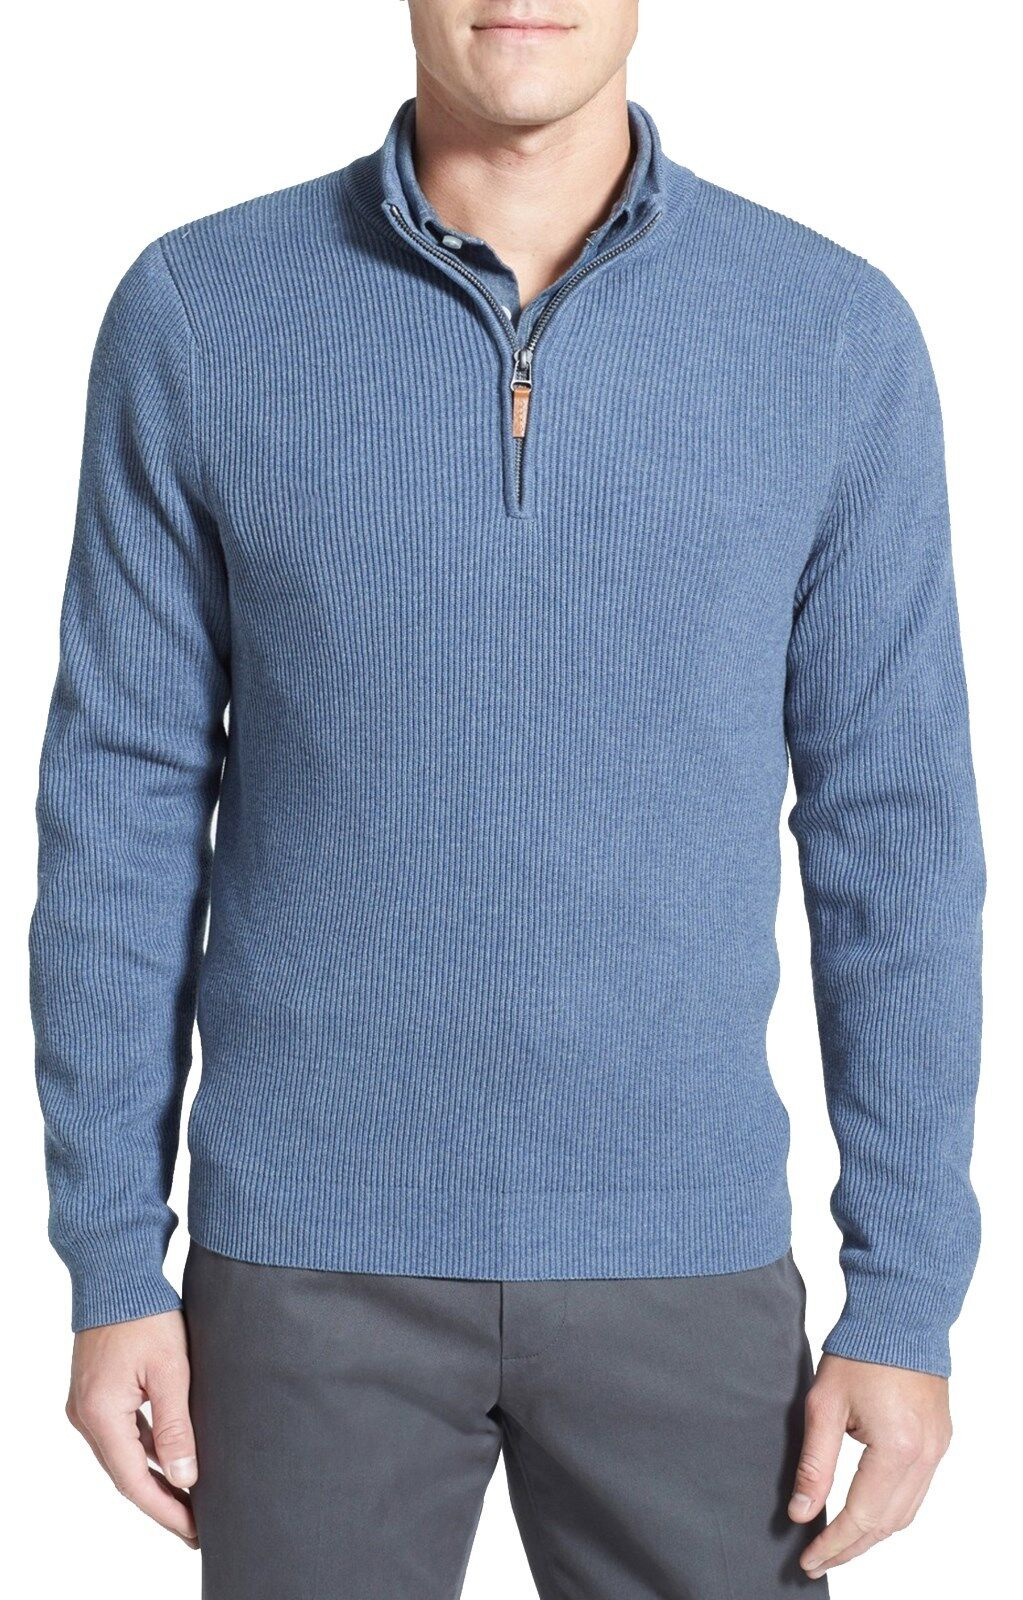 NORDSTROM Men's bluee 1 2 Zip Ribbed Knit Cotton Cashmere Sweater Sz.XXL  NWT